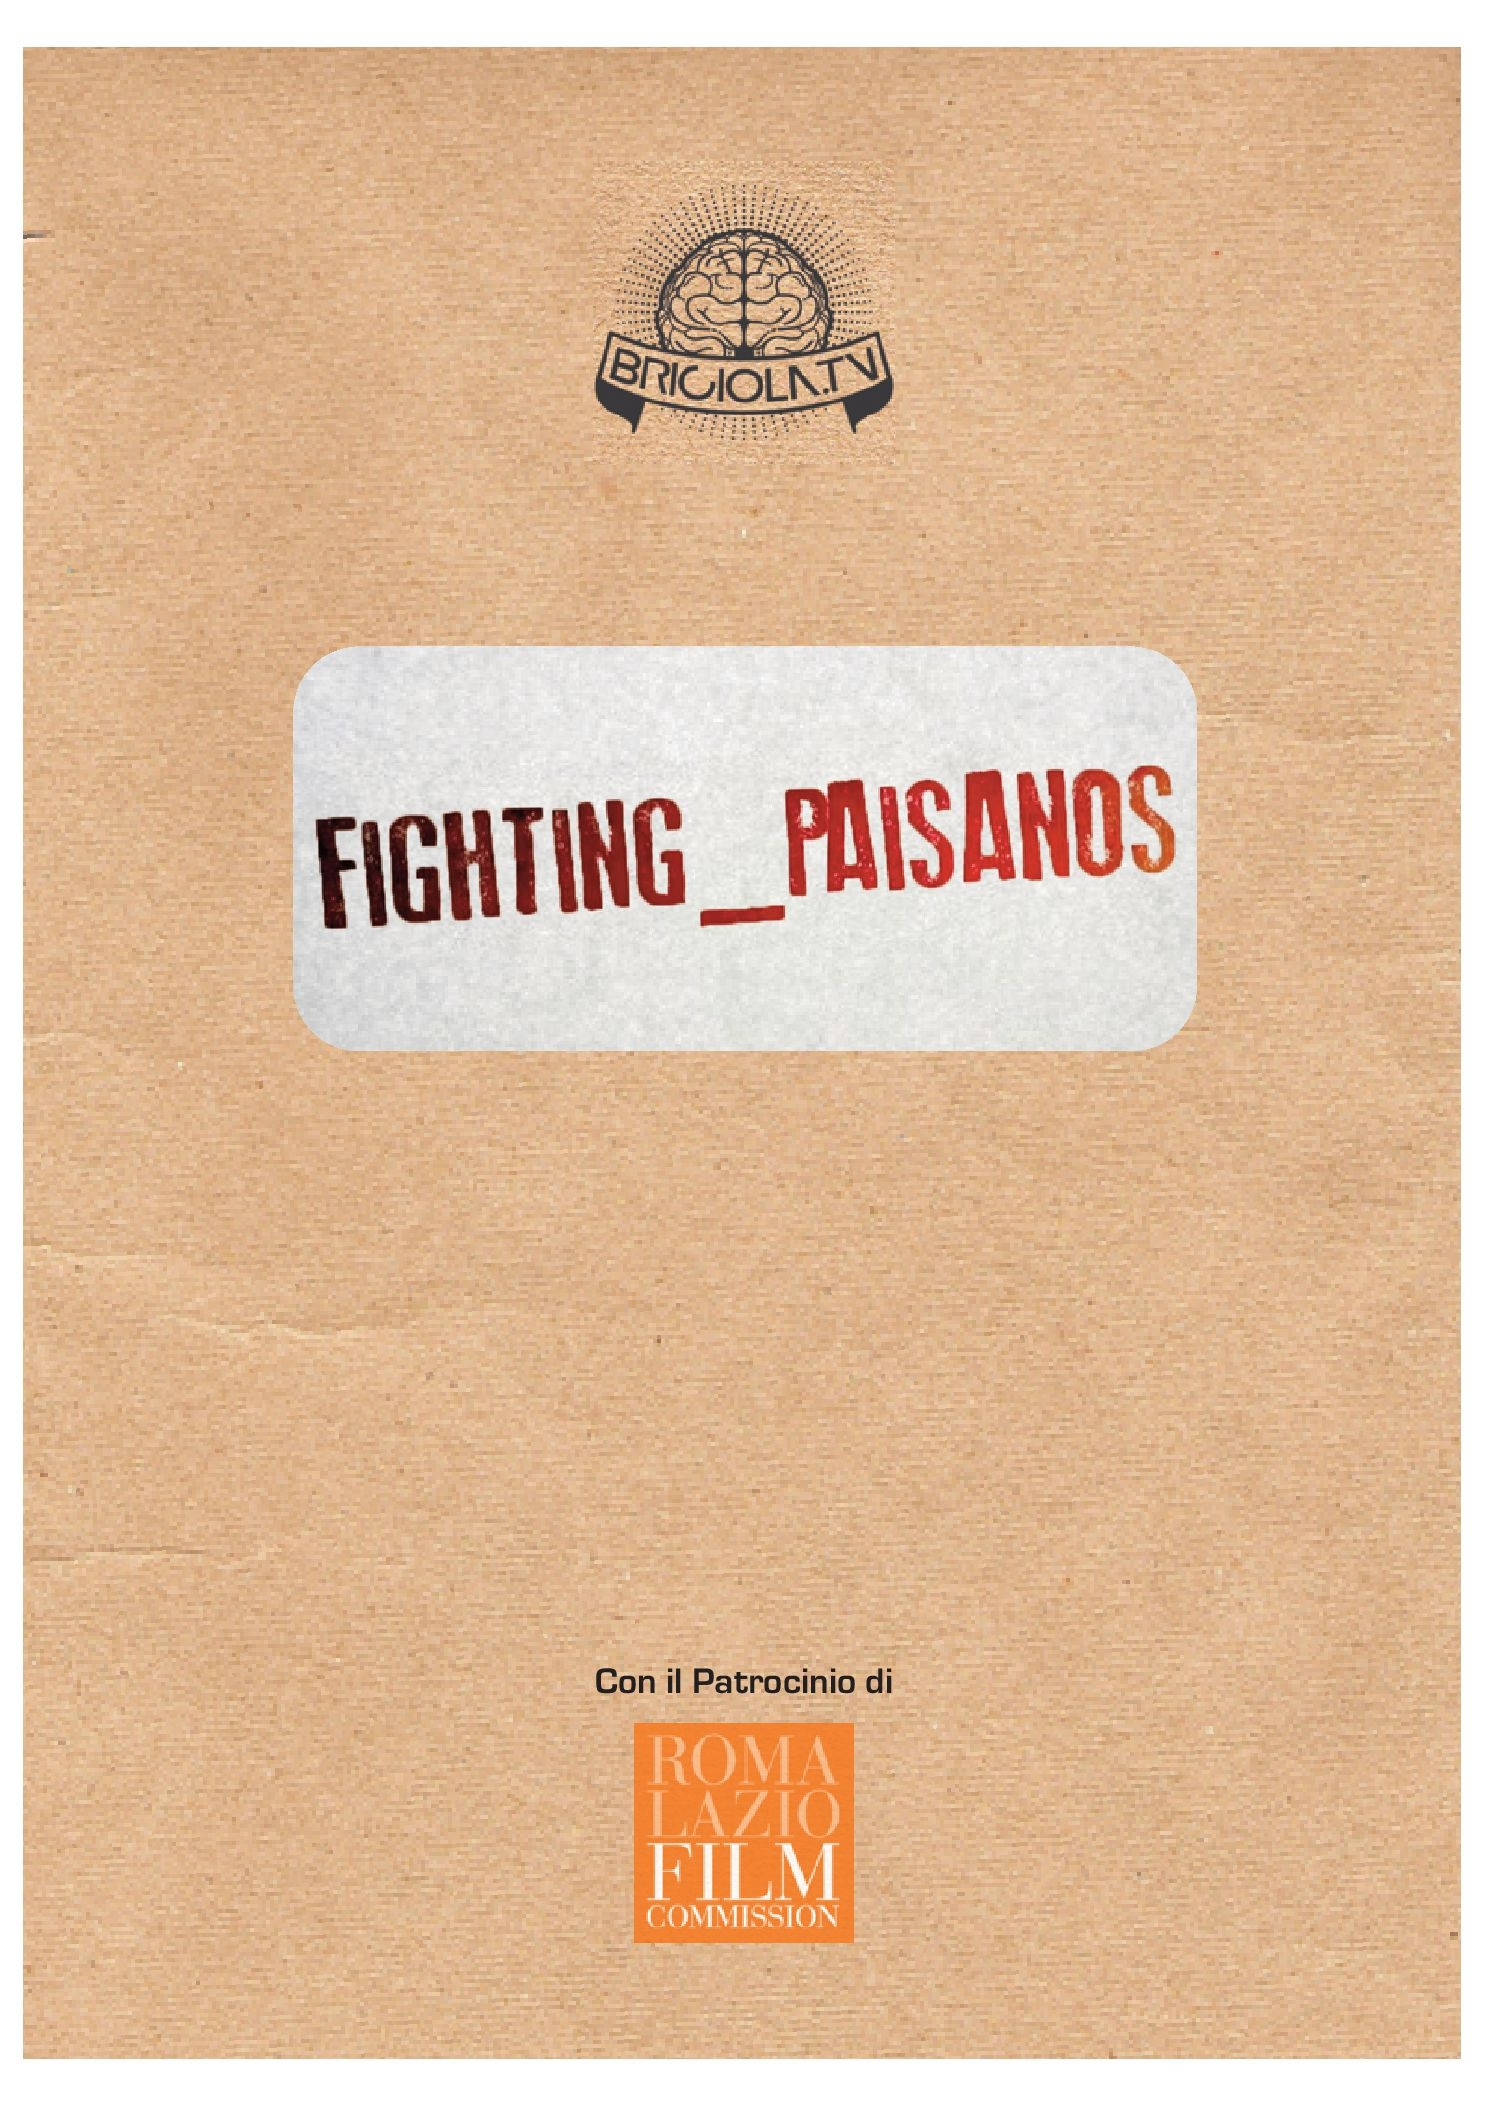 Fighting paisanos: la locandina del documentario